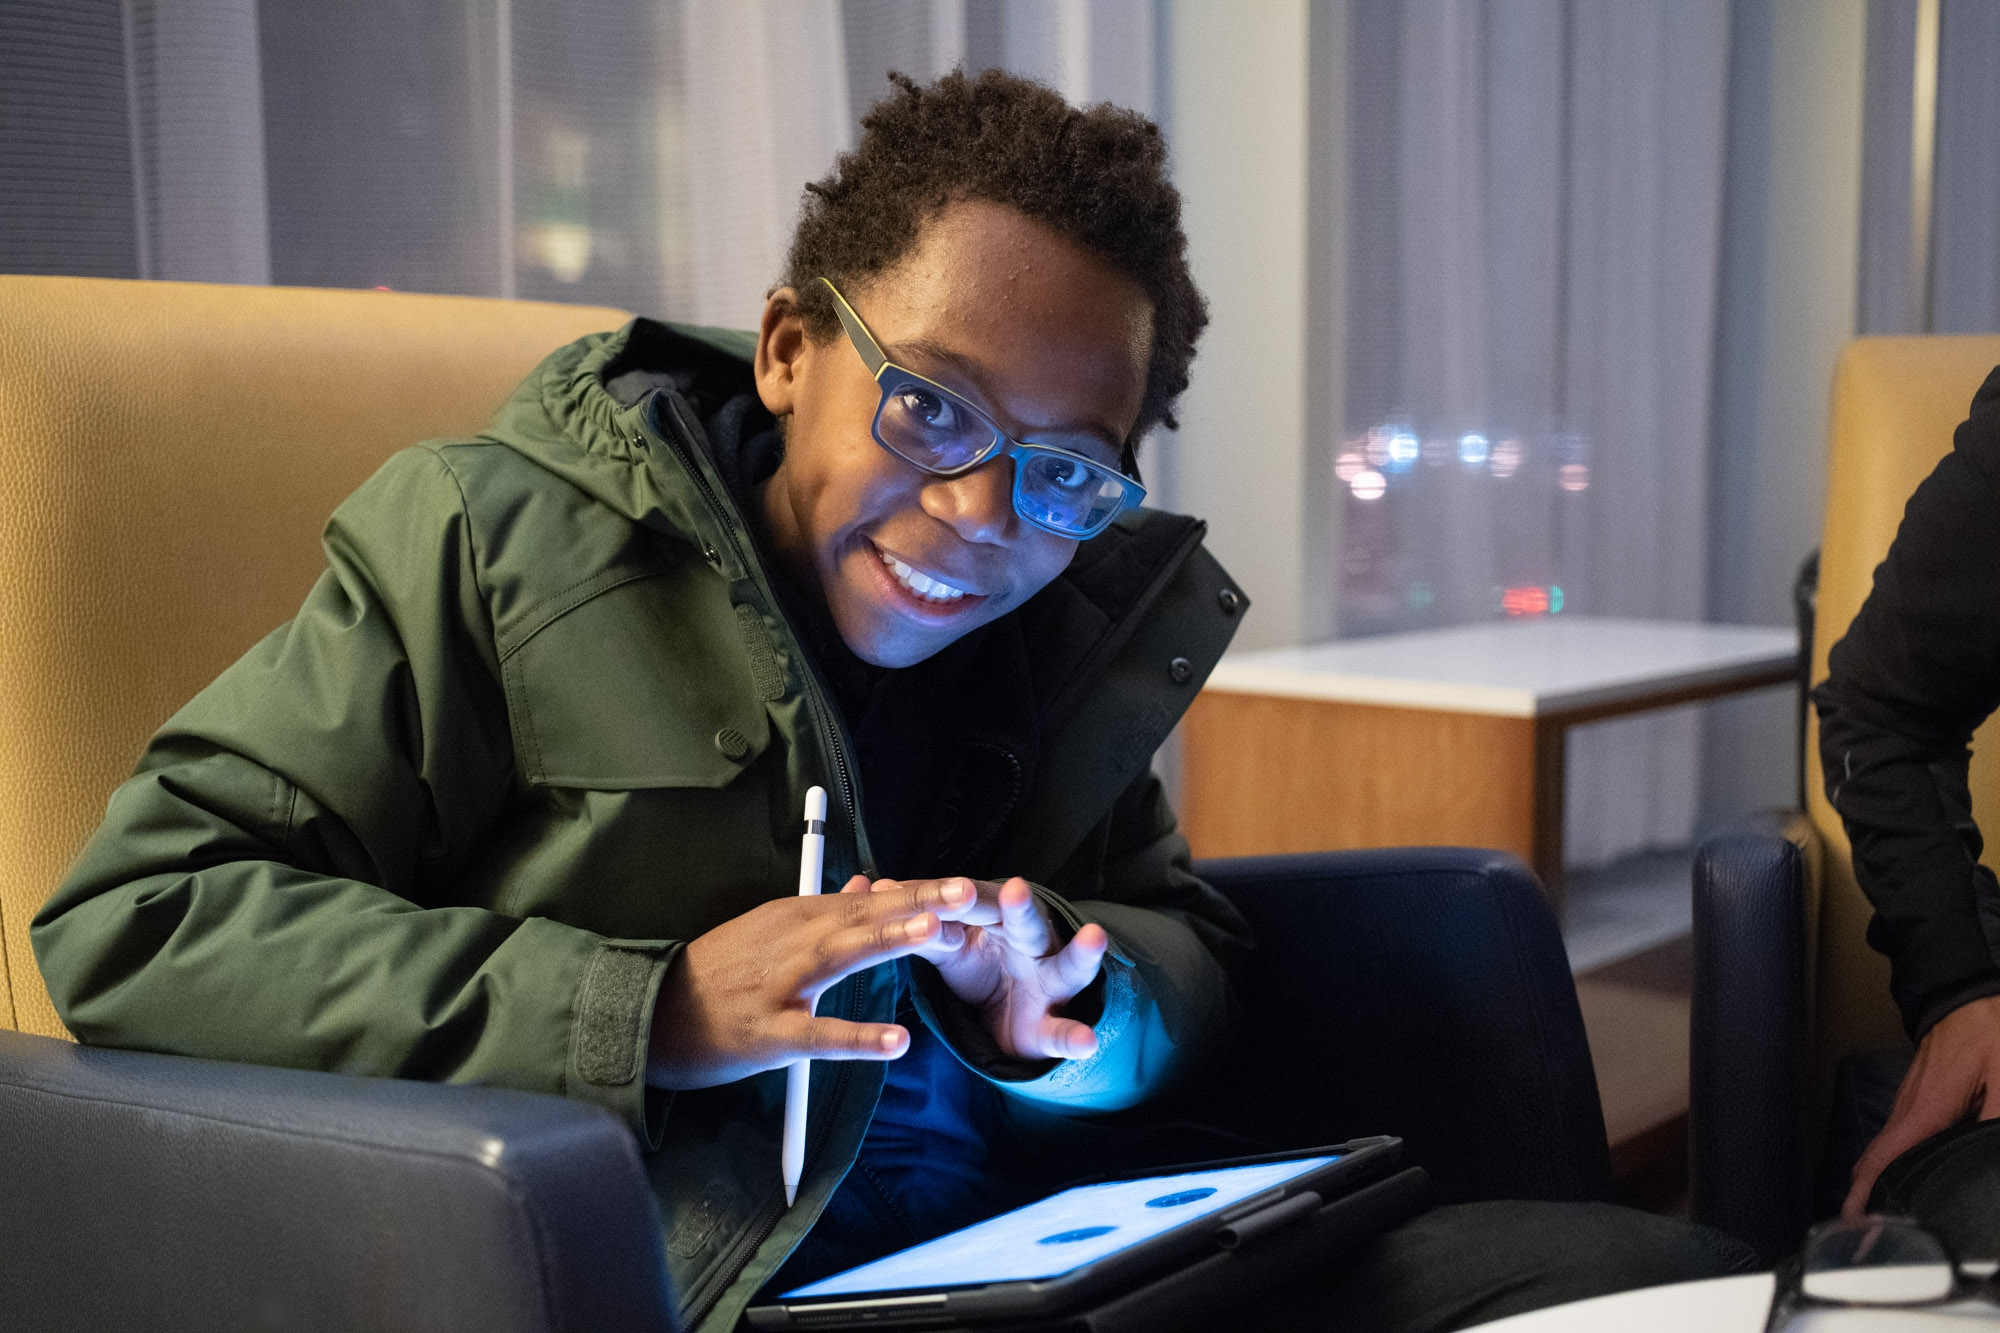 Most recent picture of my son Henri, all smiles with his best friend Sylvie Ouellette's new IPad at the Marriott Montreal Airport November 23, 2018. Sony A7III 1/100 F2.8 12800 iso